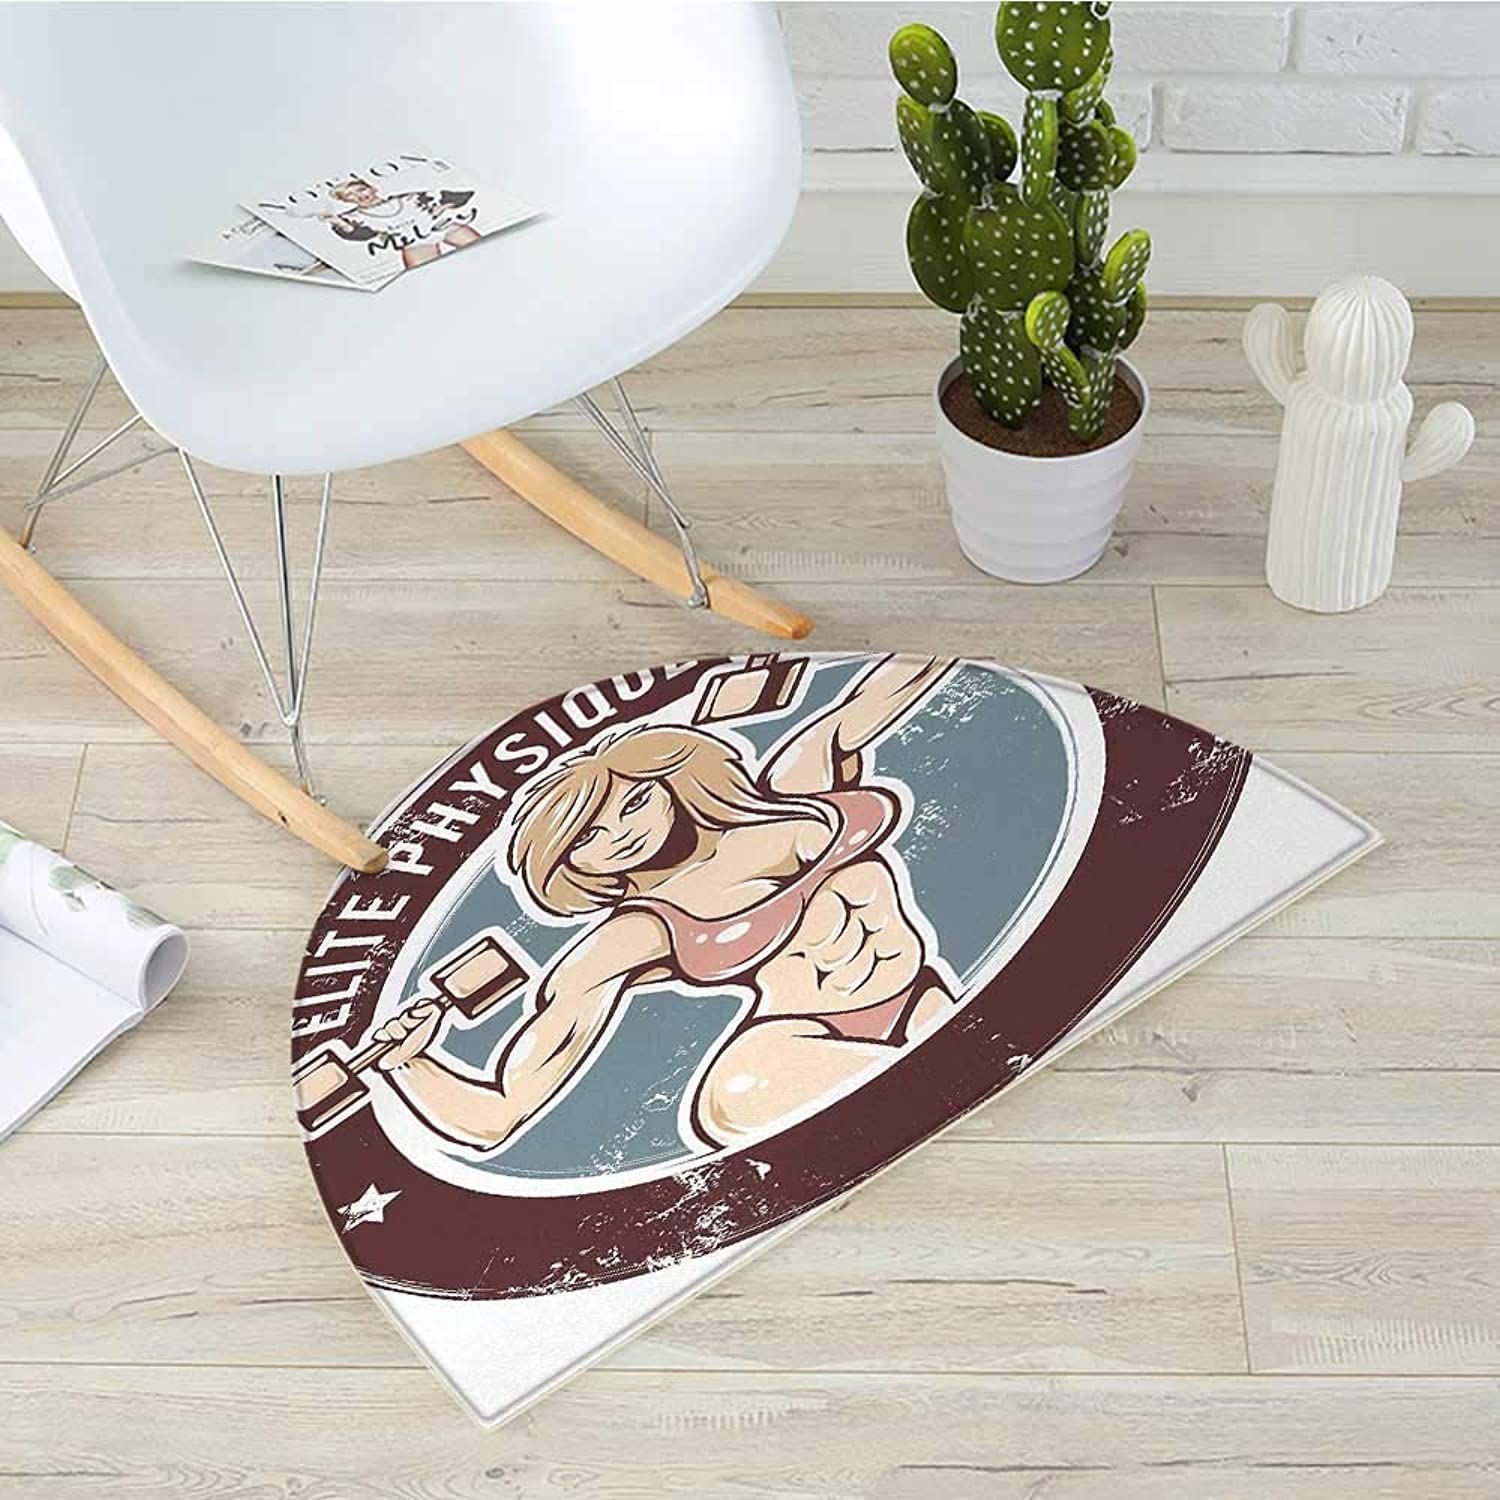 Fitness Semicircle Doormat Retro Style Sexy Lady with Dumbbells Elite Physique Grunge Display Halfmoon doormats H 39.3  xD 59  Chocolate Pale Pink bluee